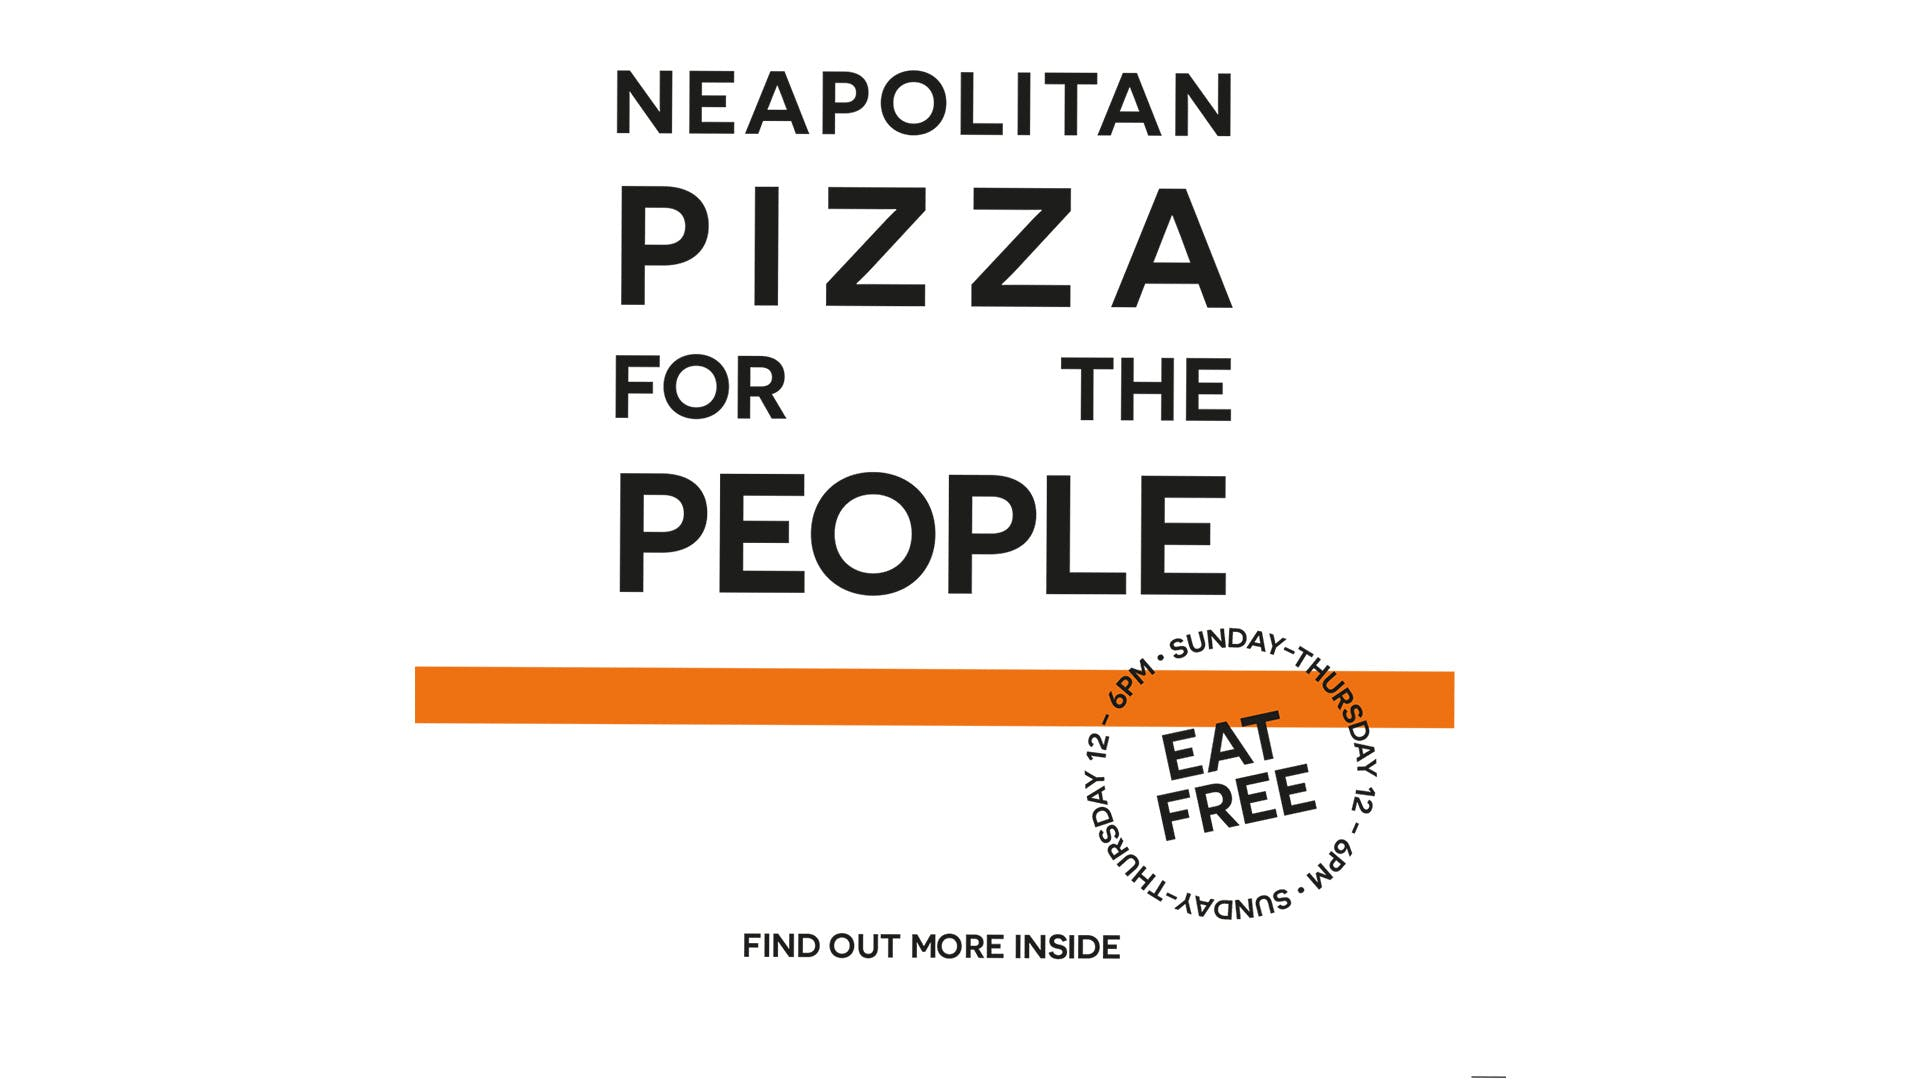 PIZZA FOR THE PEOPLE